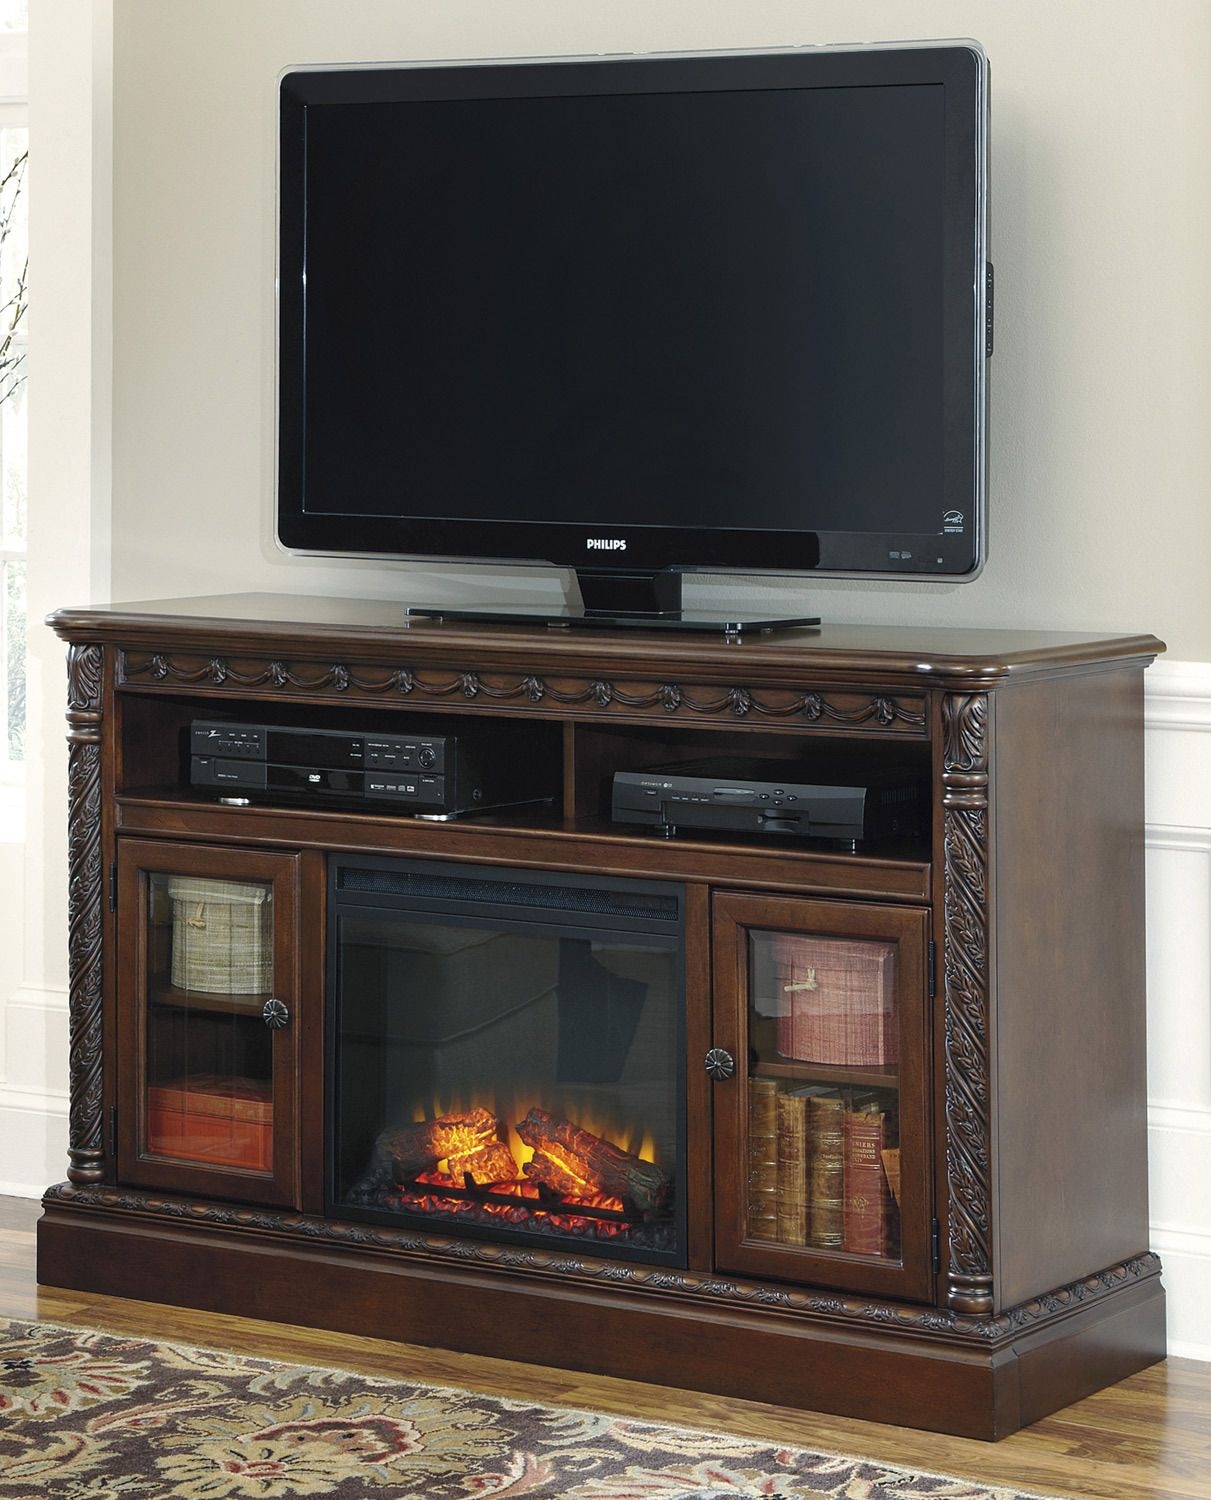 sorenson fireplace tv stand on north shore large tv stand with fireplace by ashley home gallery stores fireplace tv stand large tv stands electric fireplace tv stand fireplace tv stand large tv stands